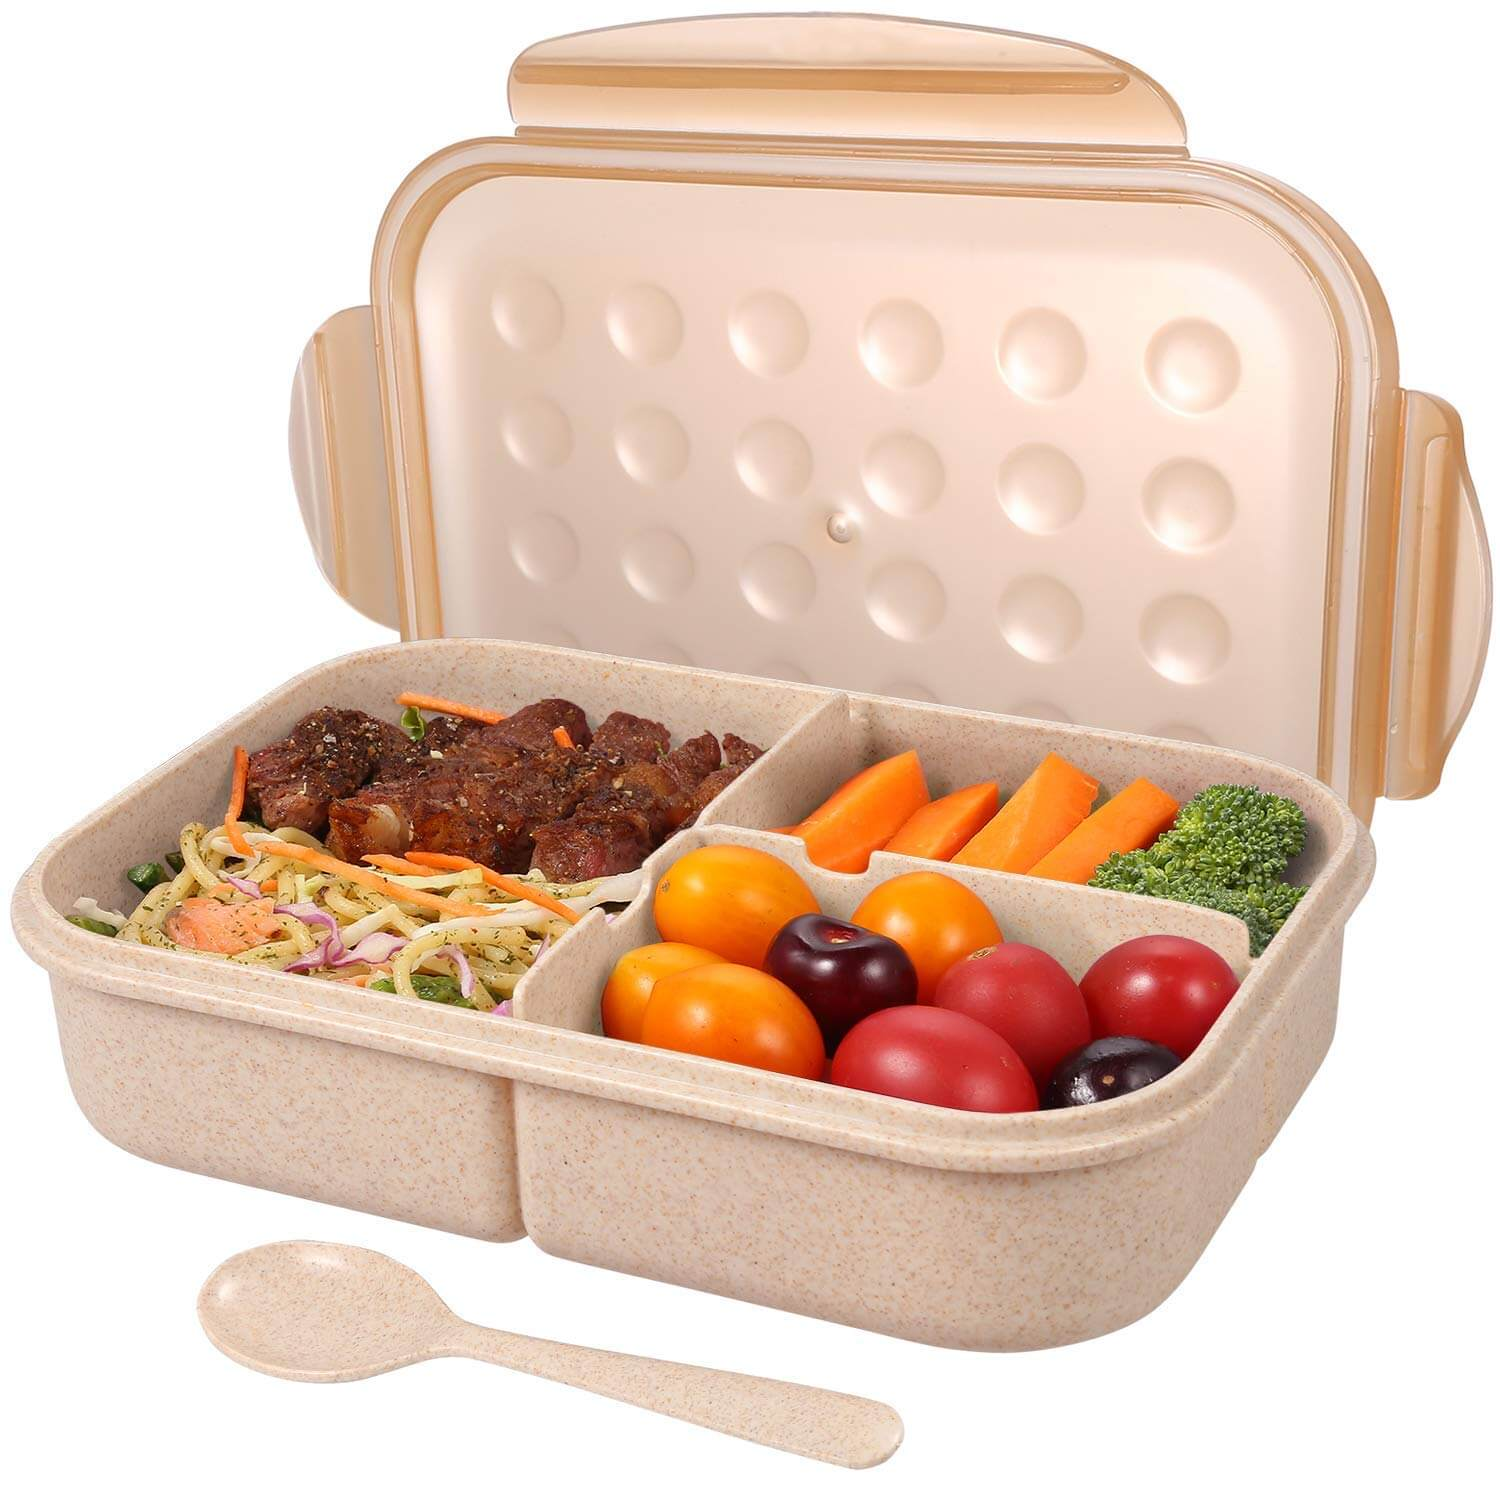 Jeopace Bento Box